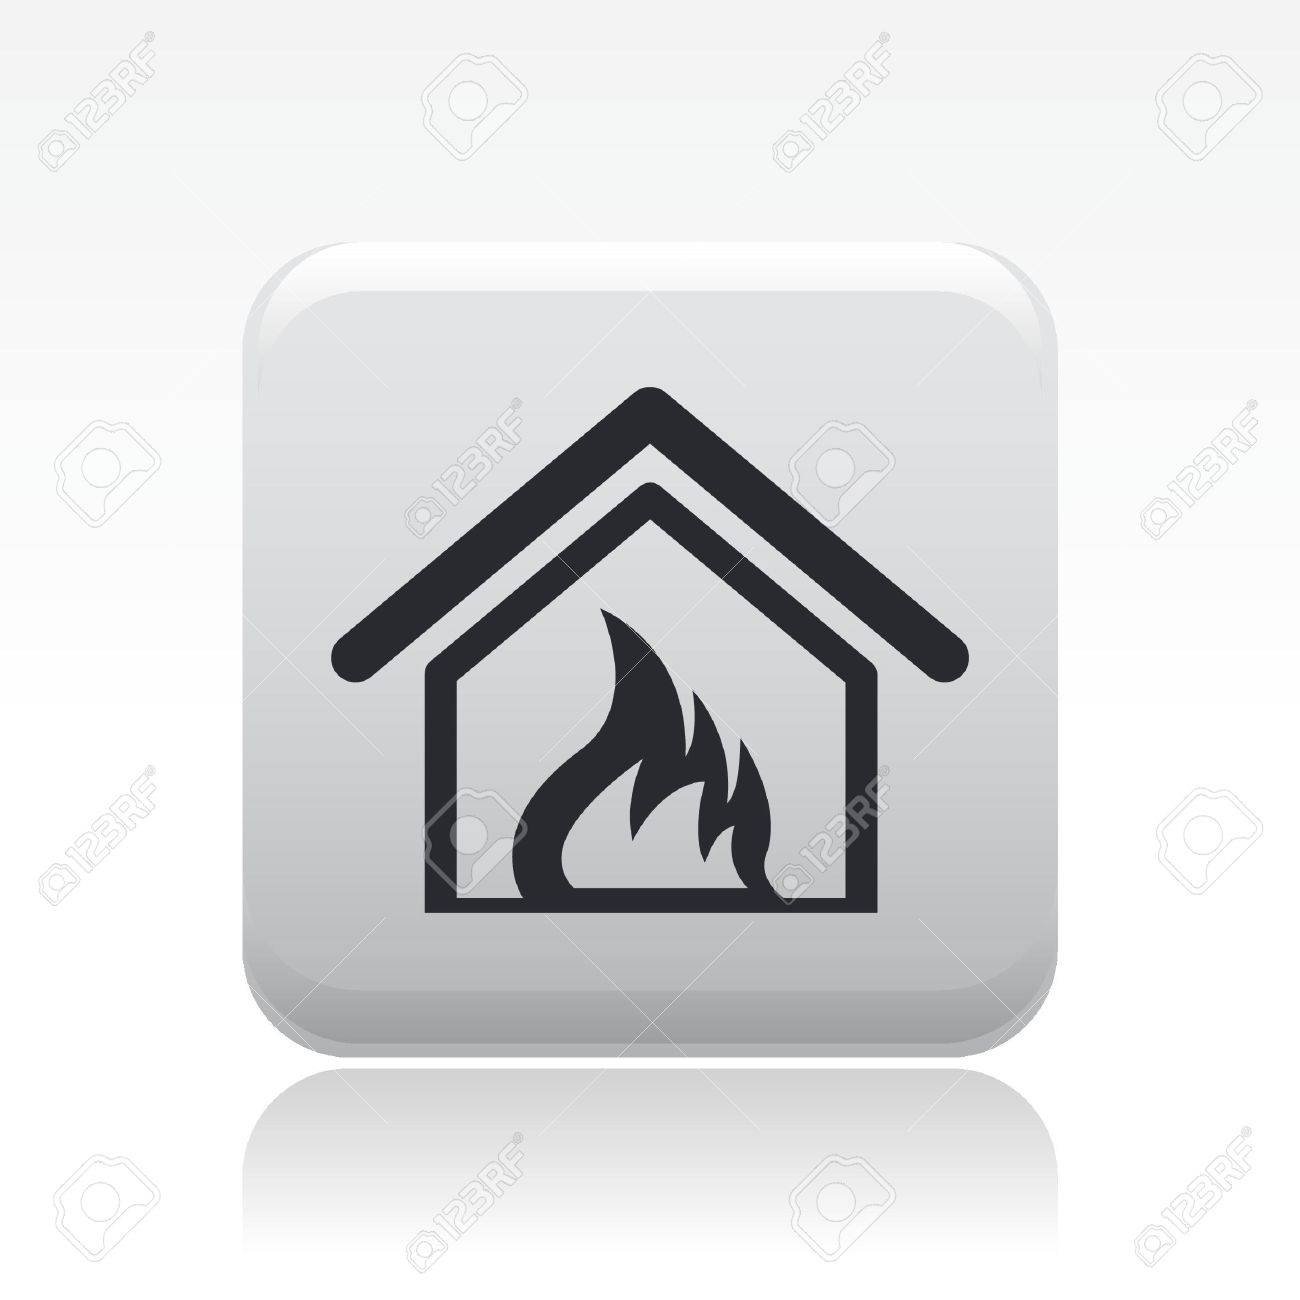 Vector illustration of house burning single isolated icon Stock Vector - 12119685